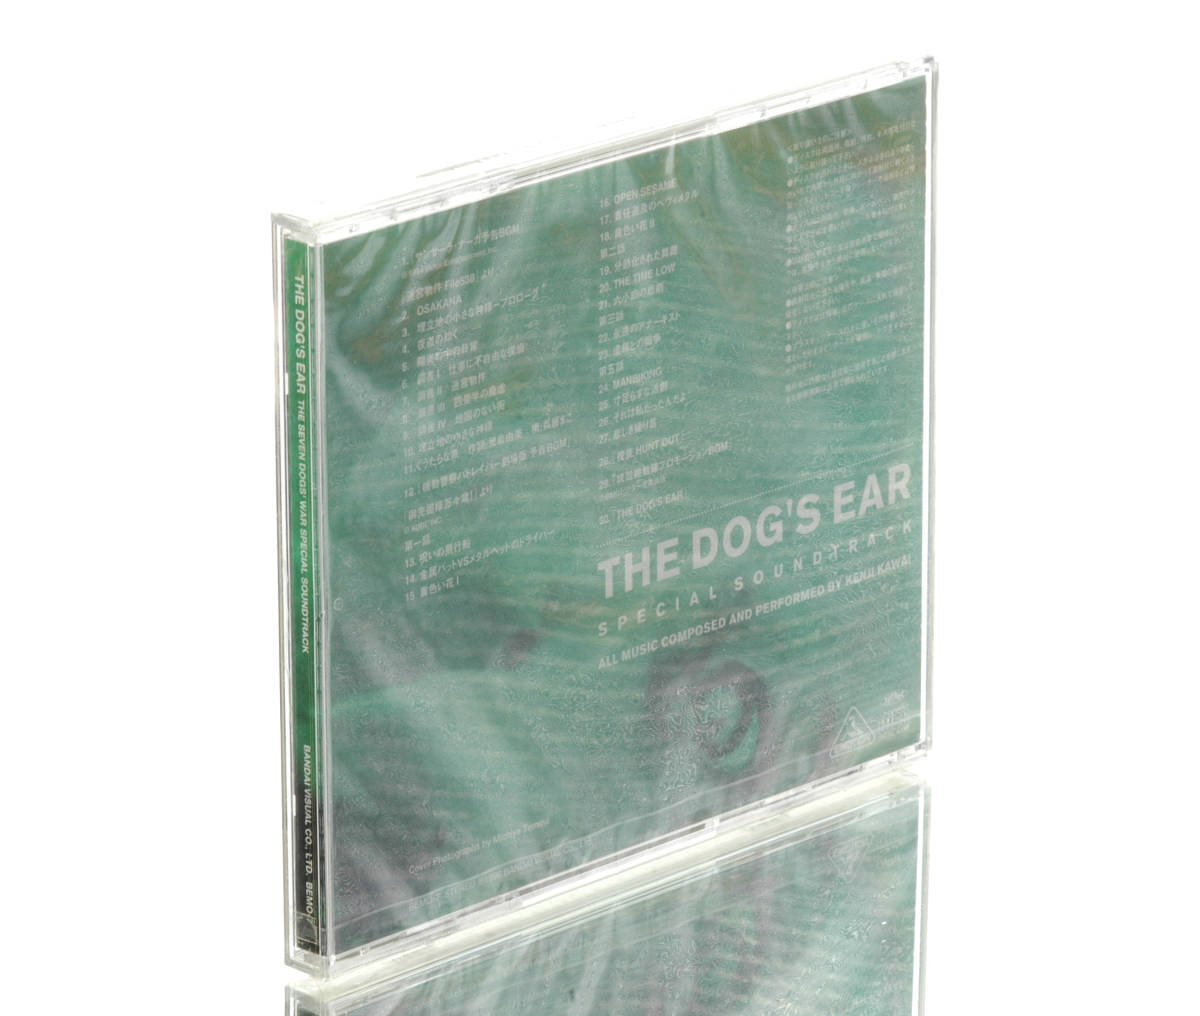 [Unopened New] [Delivery Fee Included]1996 THE DOG'S EAR SPECIAL SOUNDTRACK Kawai Kenji 川井憲次 _画像5